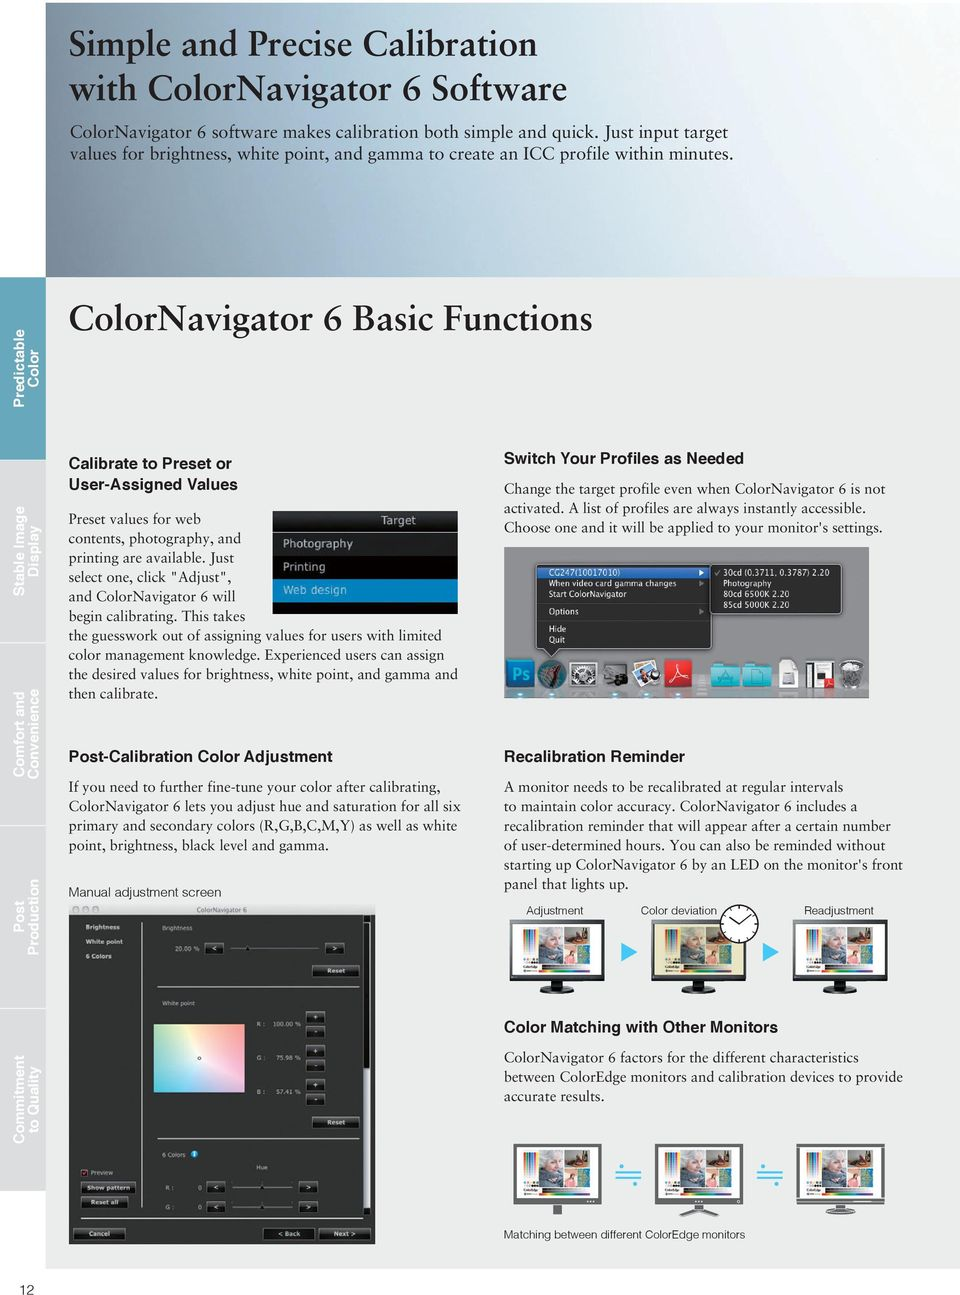 Predictable Color ColorNavigator 6 Basic Functions Stable Image Display Comfort and Convenience Post Production Calibrate to Preset or User-Assigned Values Preset values for web contents,